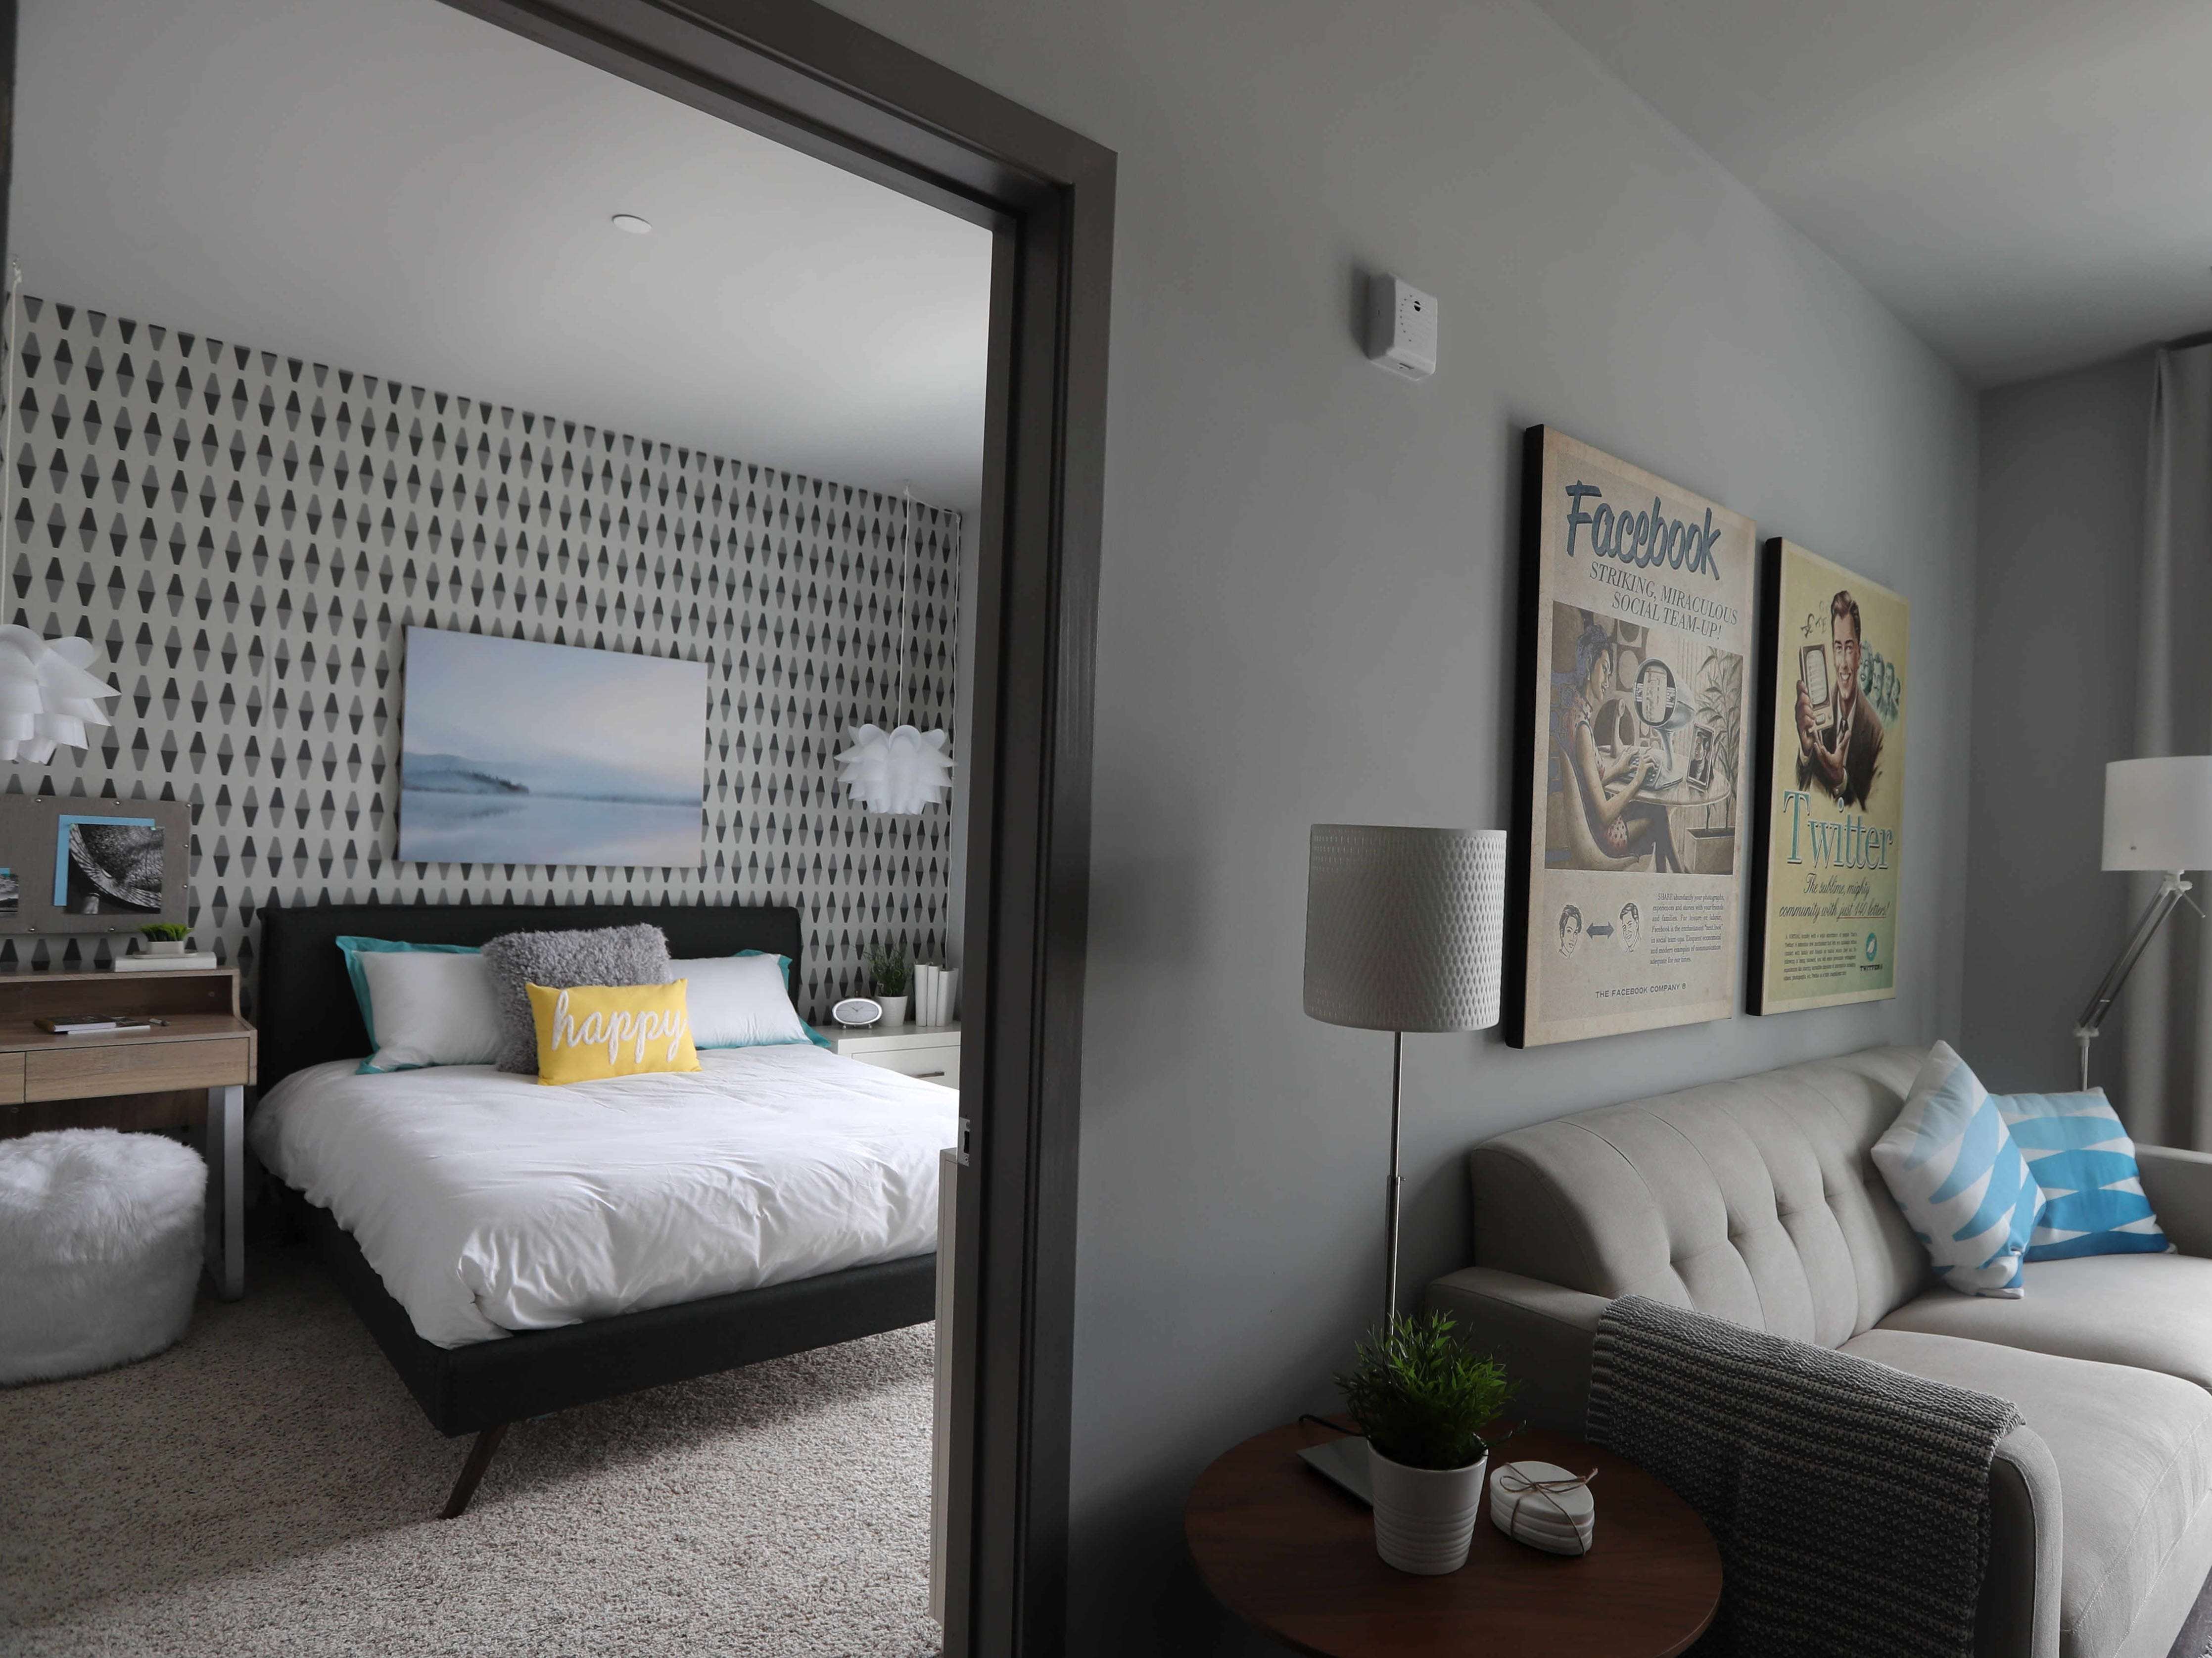 The bedroom and living room of a one-bedroom apartment at the Modera, a new luxury apartment building on the Yonkers riverfront Aug. 1, 2018. The Modera, which opened in January, will have over three-hundred studio, one-bedroom, and two-bedroom apartments when all when the building is totally completed.